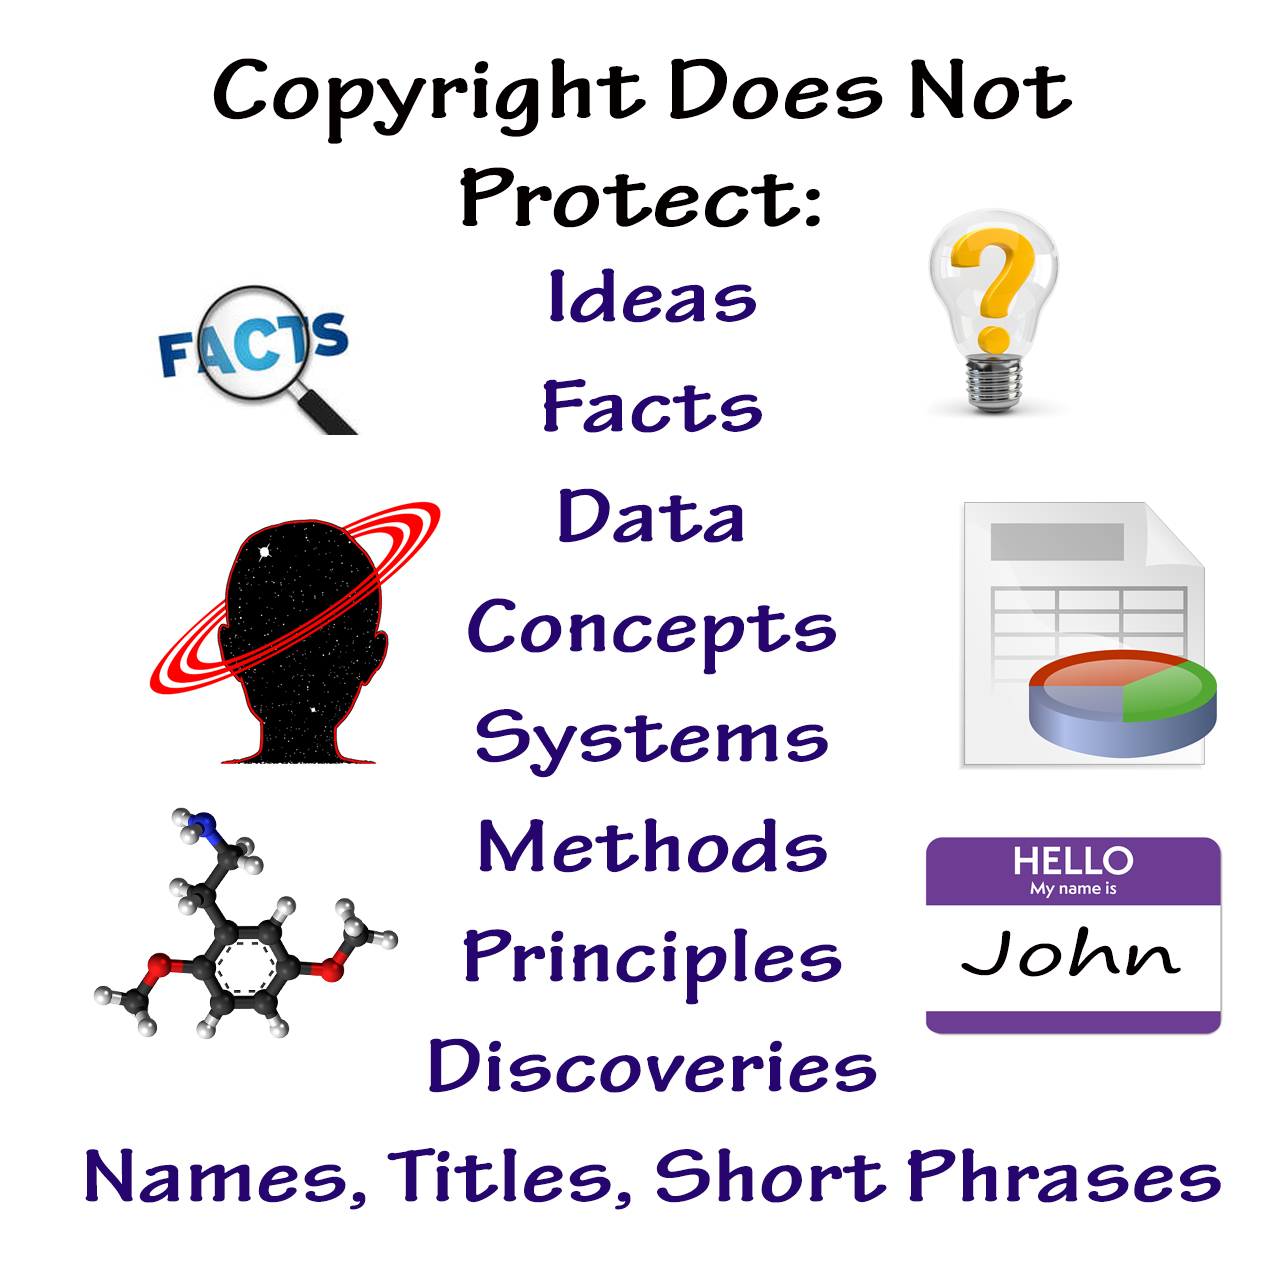 Copyright Does Not Protect